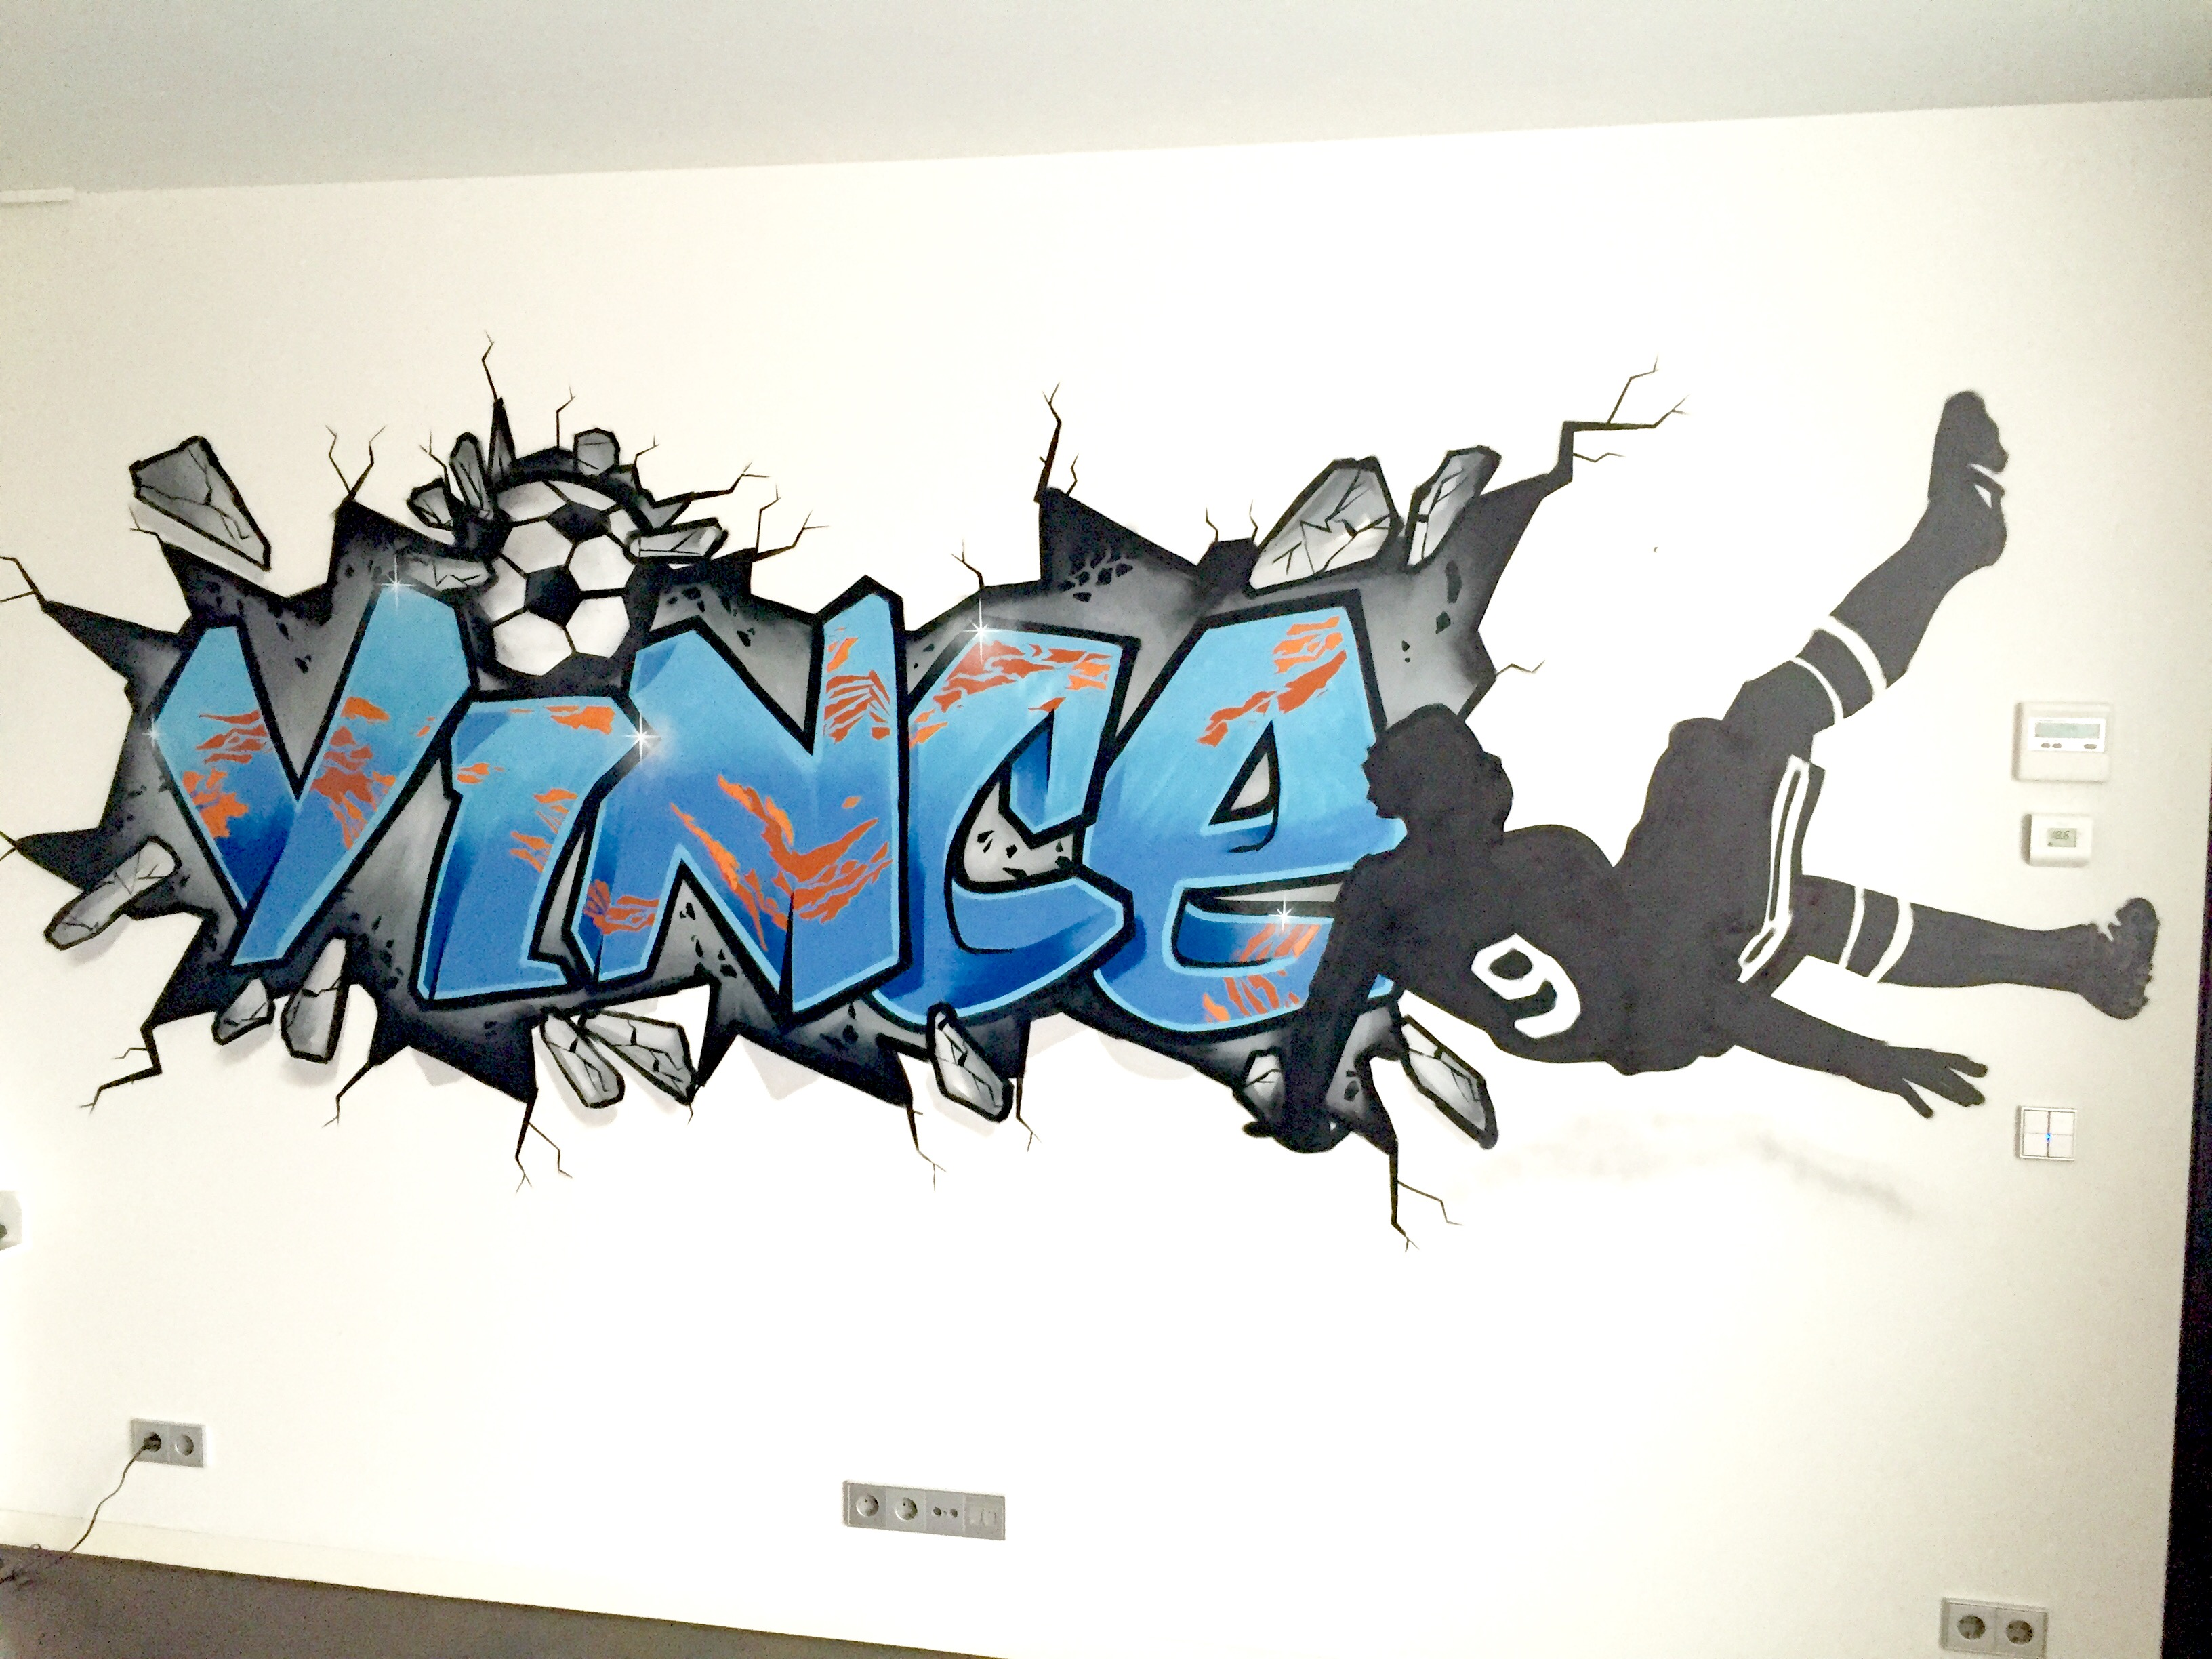 Graffiti behang foto - Sport Behang